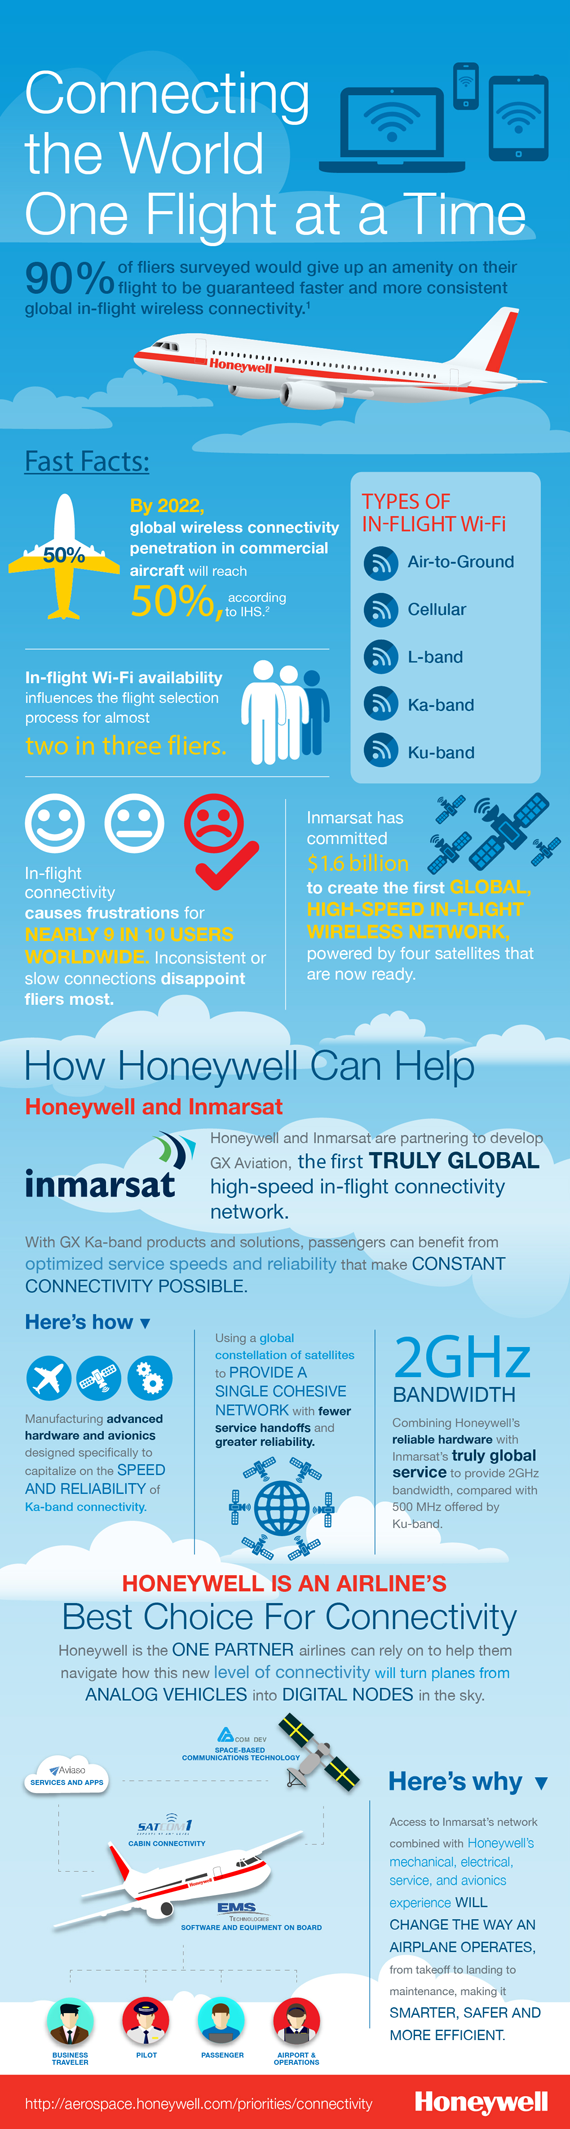 Why Speed Alone Isn't the Holy Grail in the Quest for a Better In-flight Wi-Fi Experience